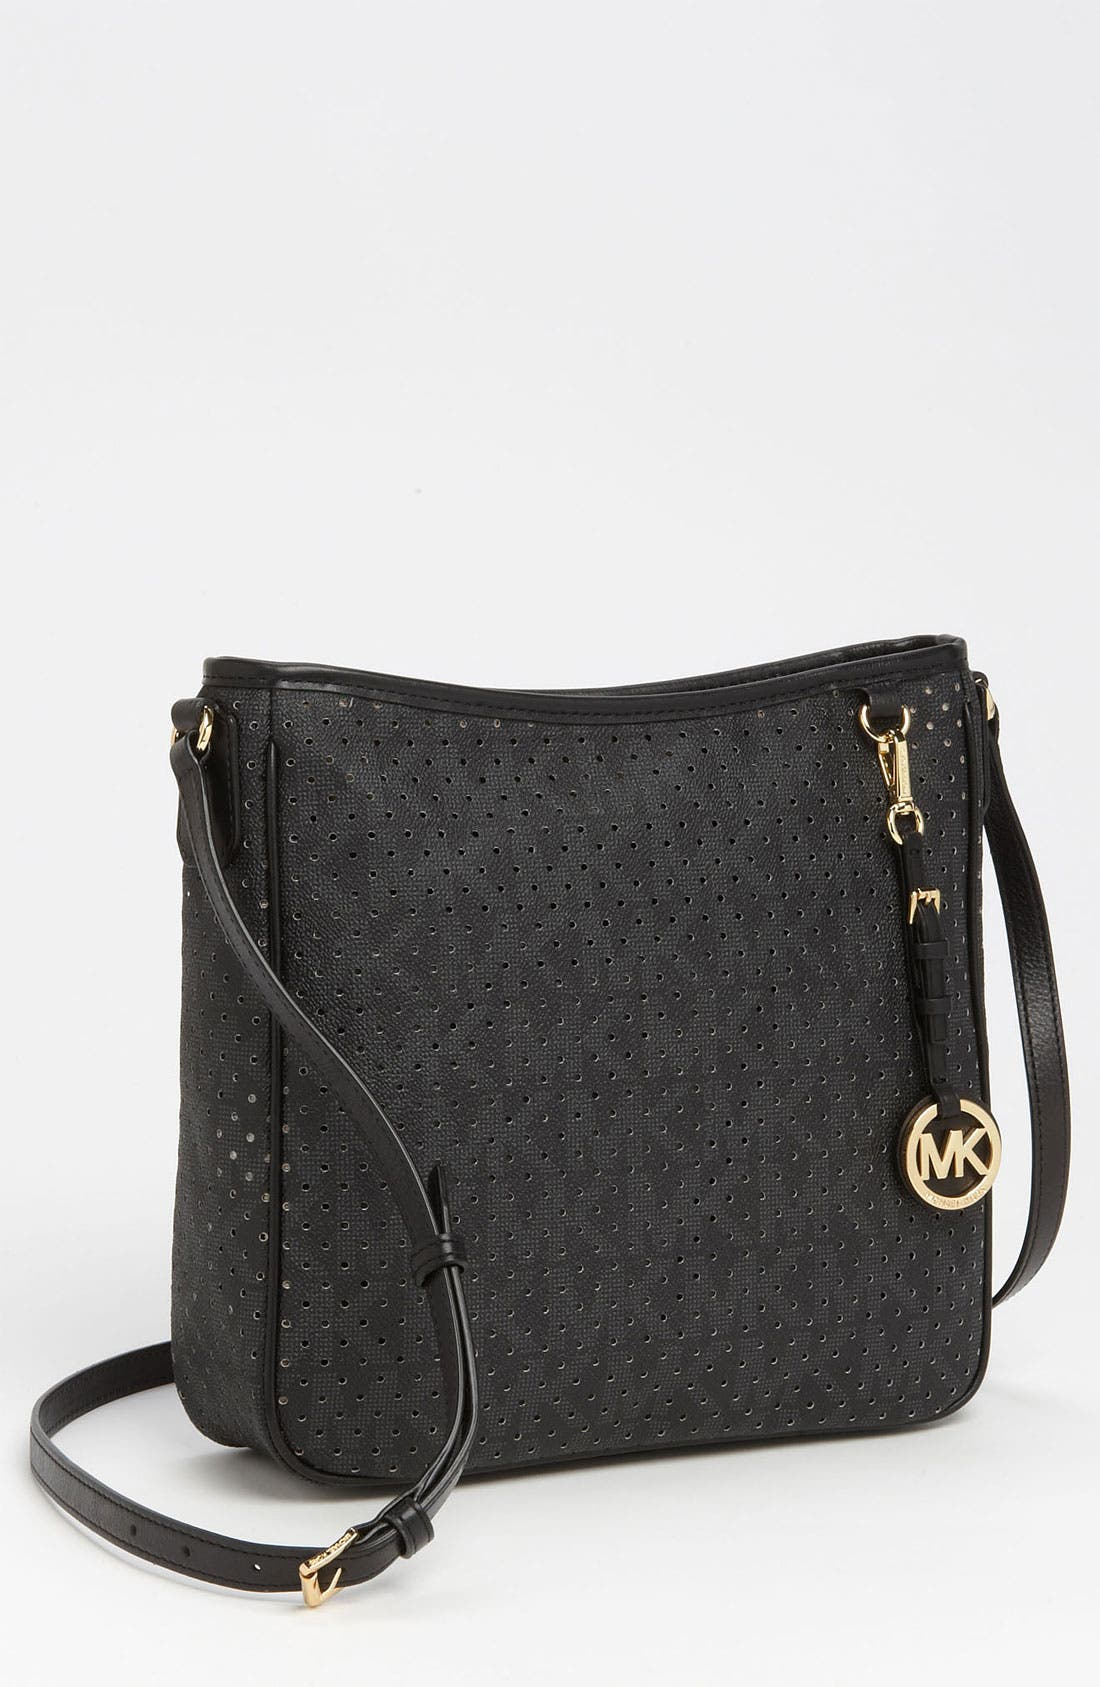 Alternate Image 1 Selected - MICHAEL Michael Kors 'Signature - Large' Perforated Crossbody Bag